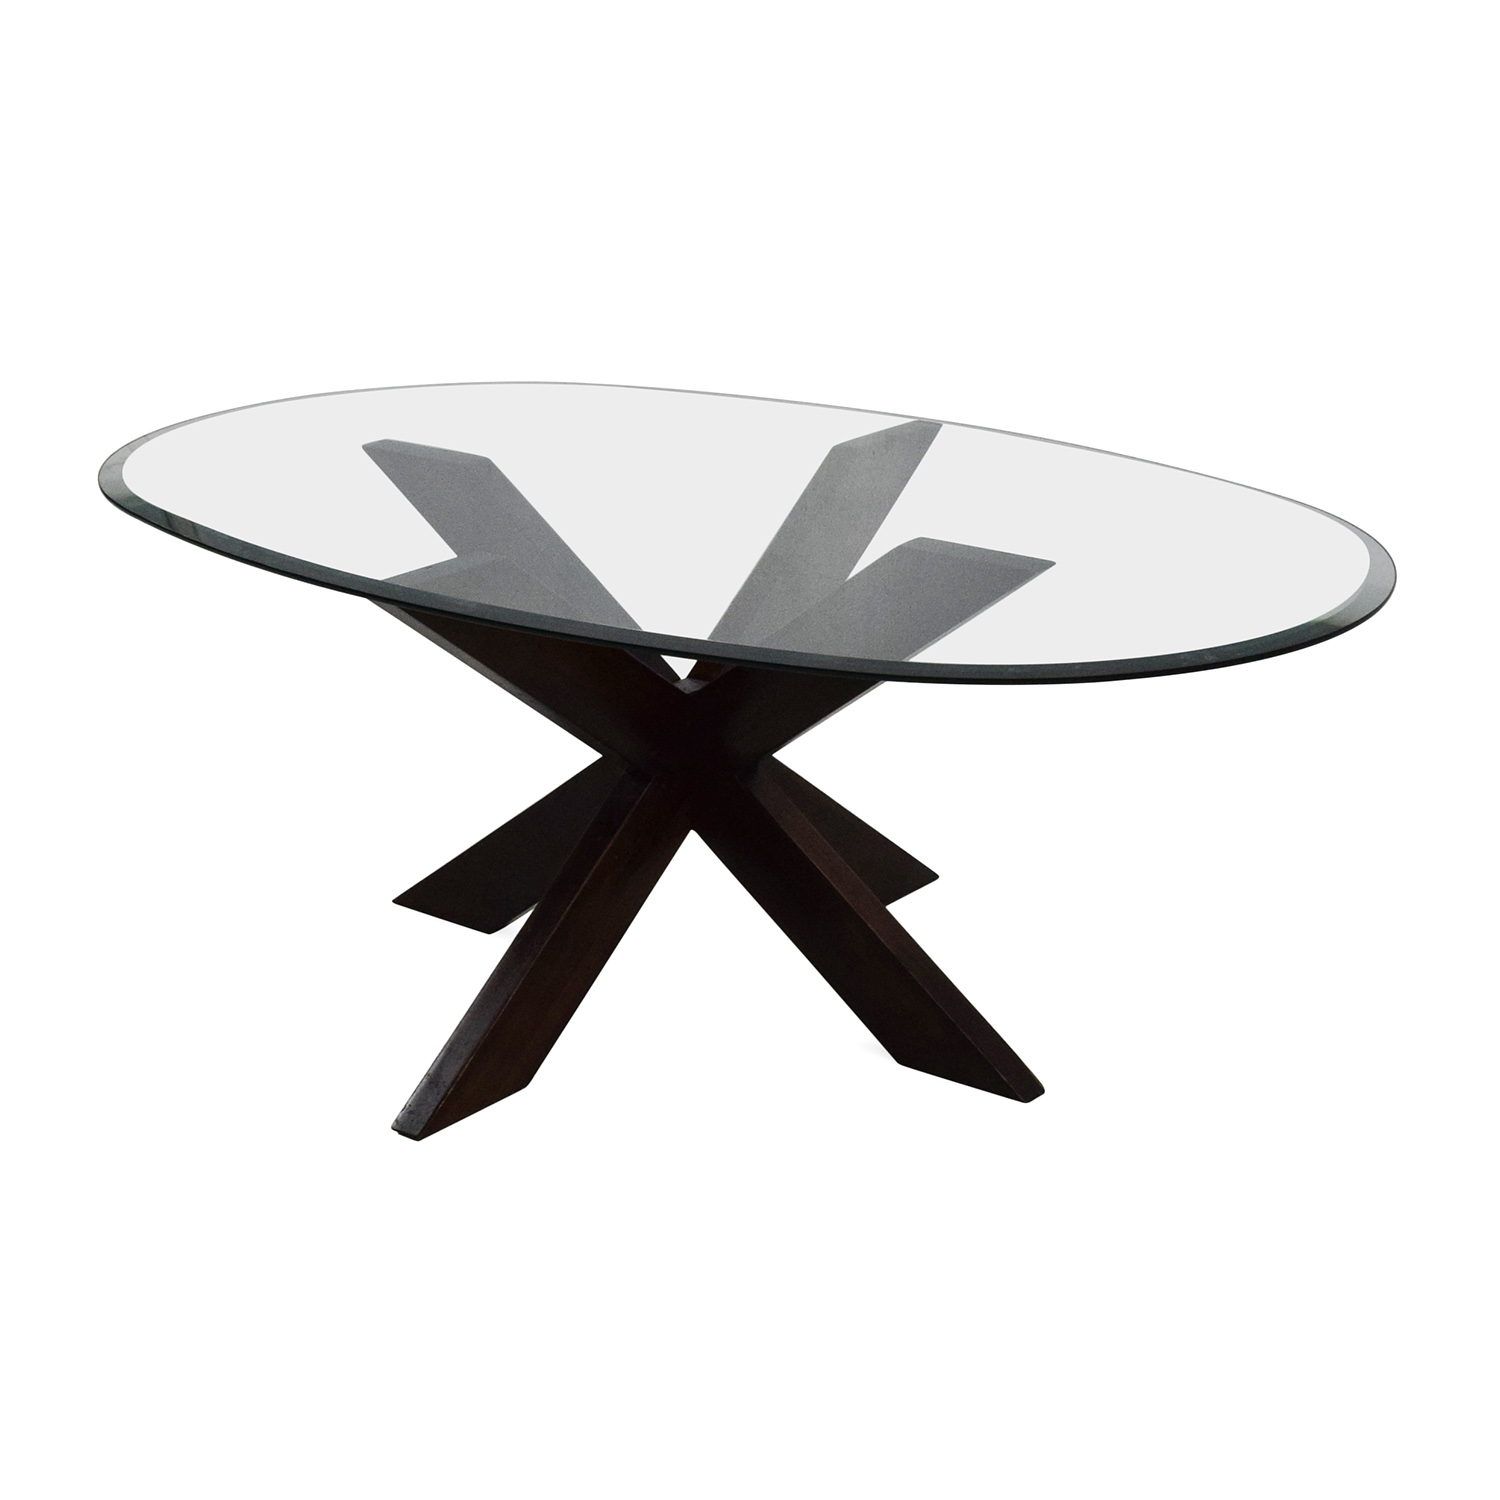 74 Off Pier 1 Imports Pier 1 Imports Simon X Coffee Table Tables